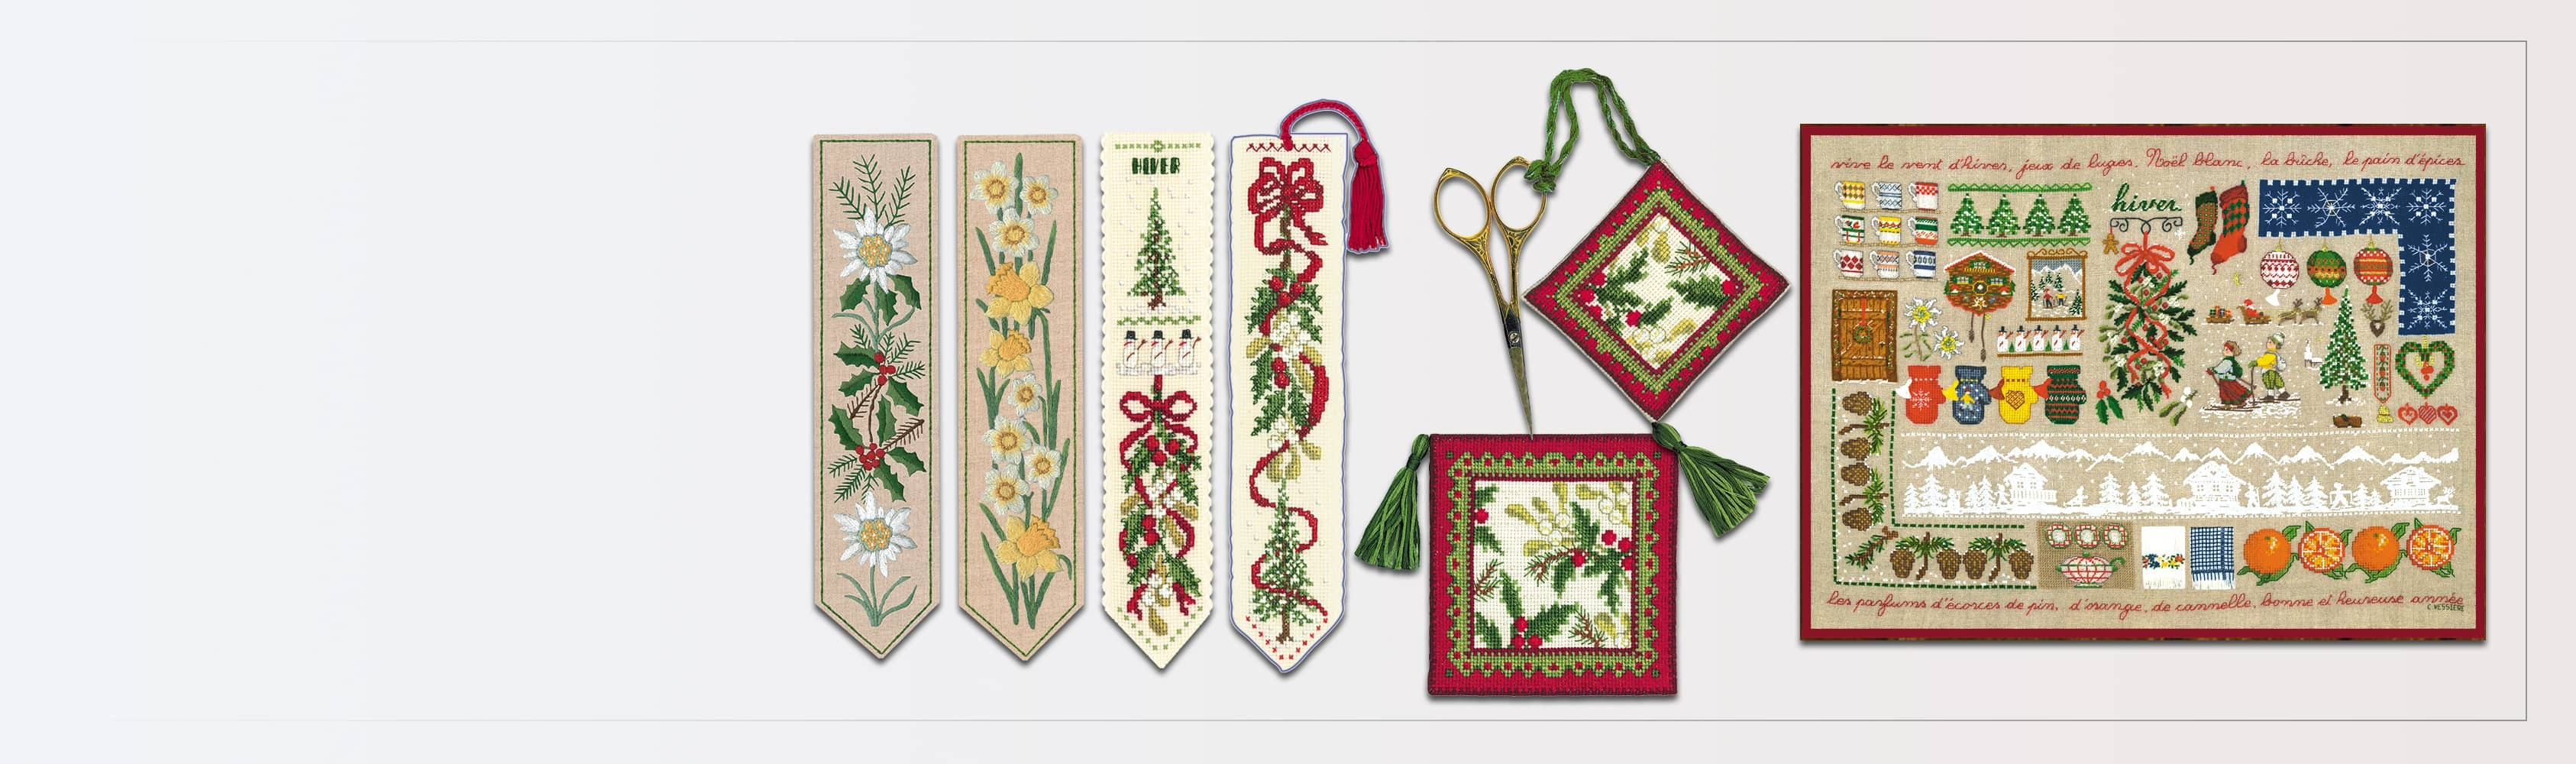 Bookmarks and other winter accessories to embroider by counted stitch and by traditional embroidery stitches. Kits designed by Cécile Vessière for Le Bonheur des Dames